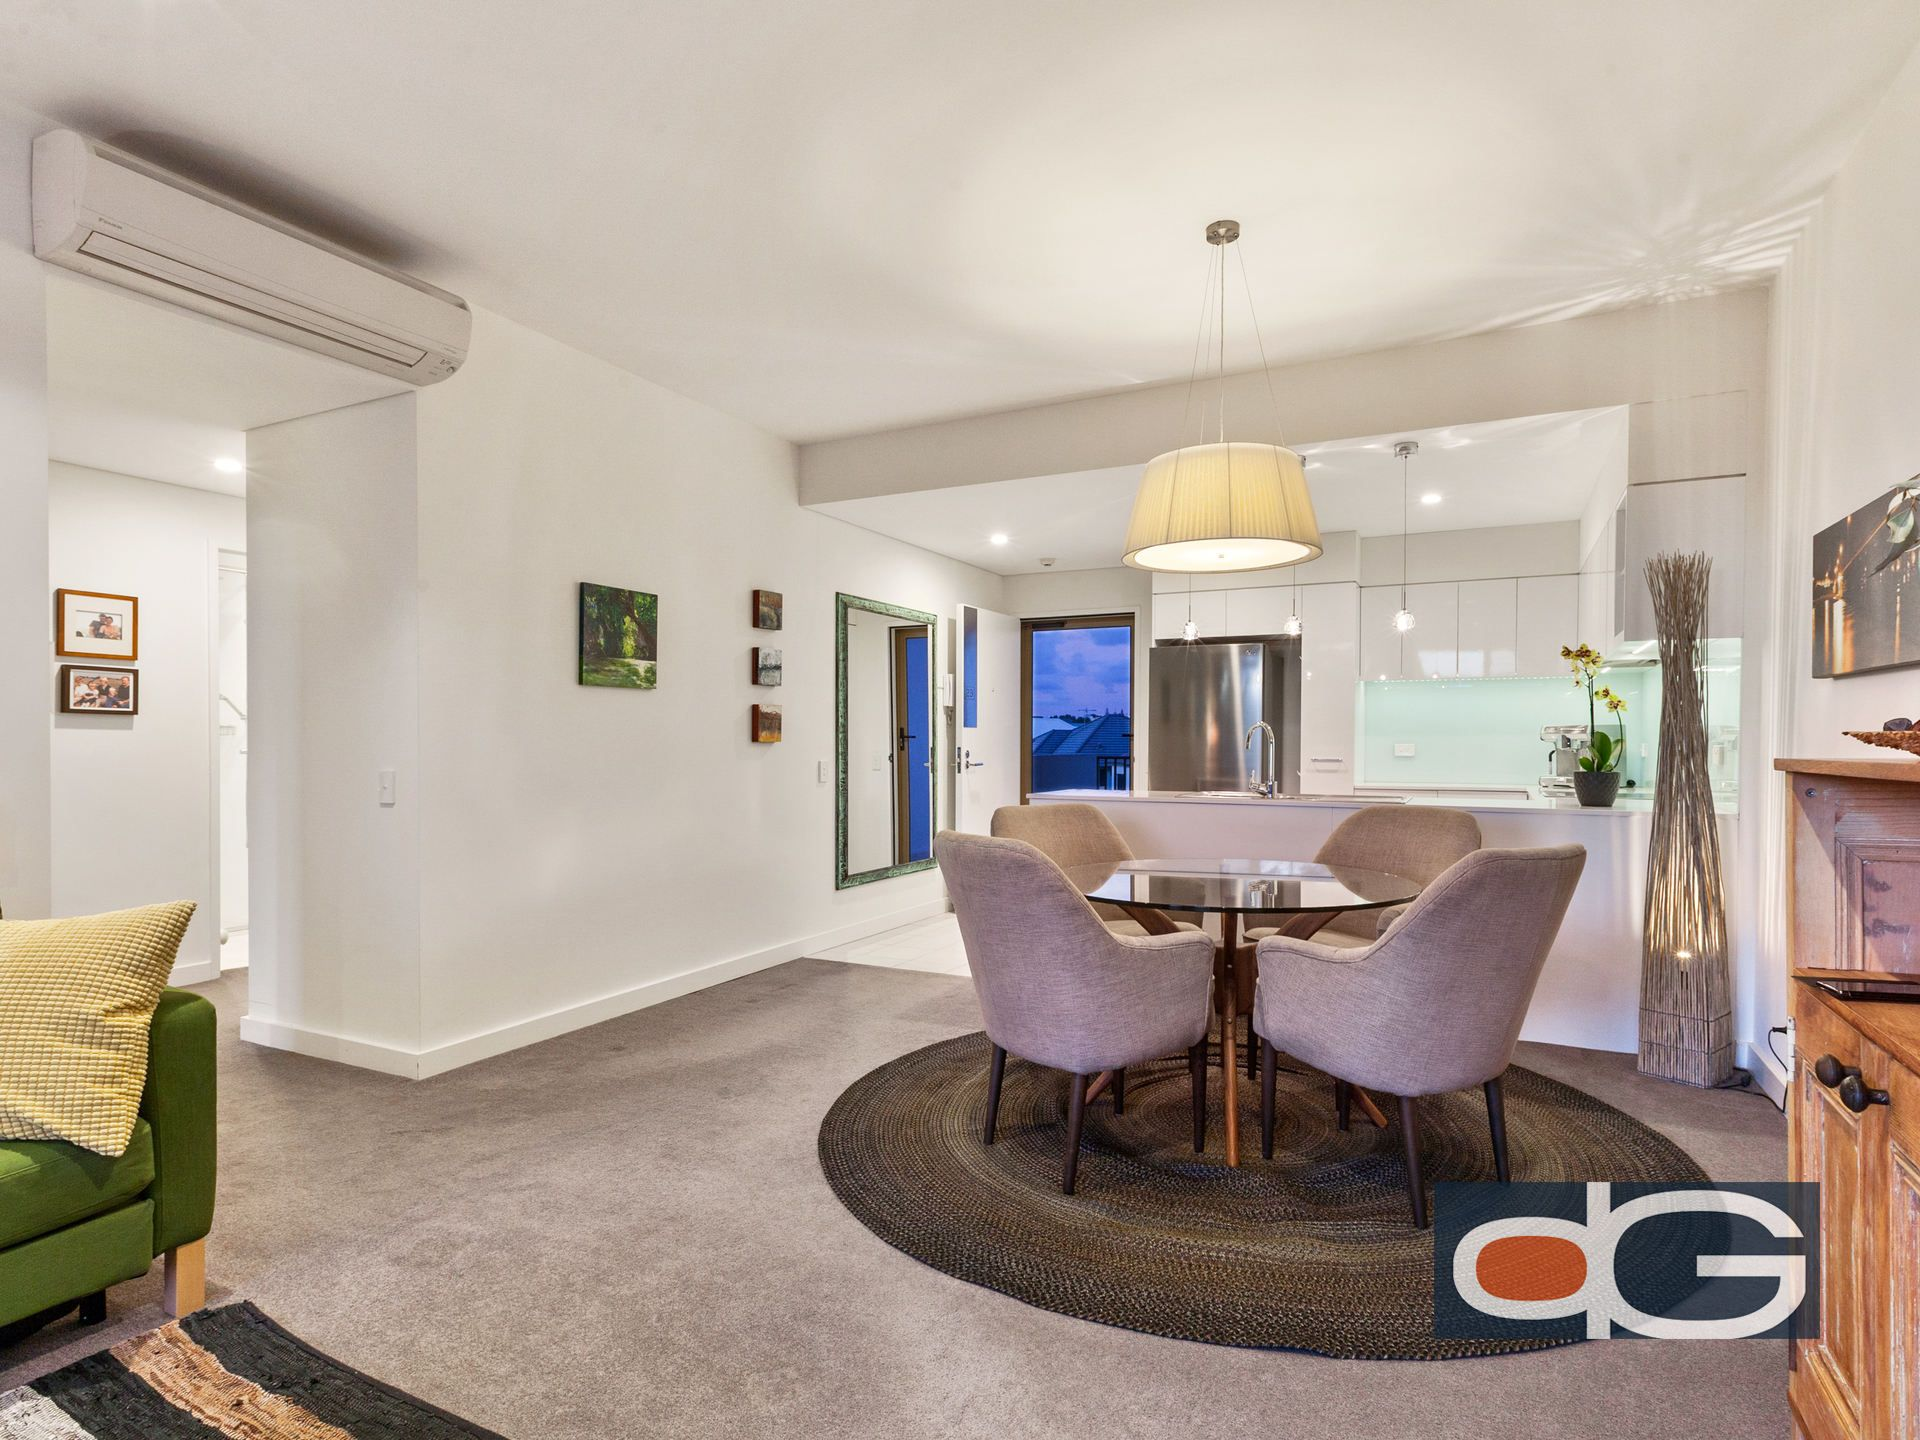 23/22 Heirisson Way, North Coogee